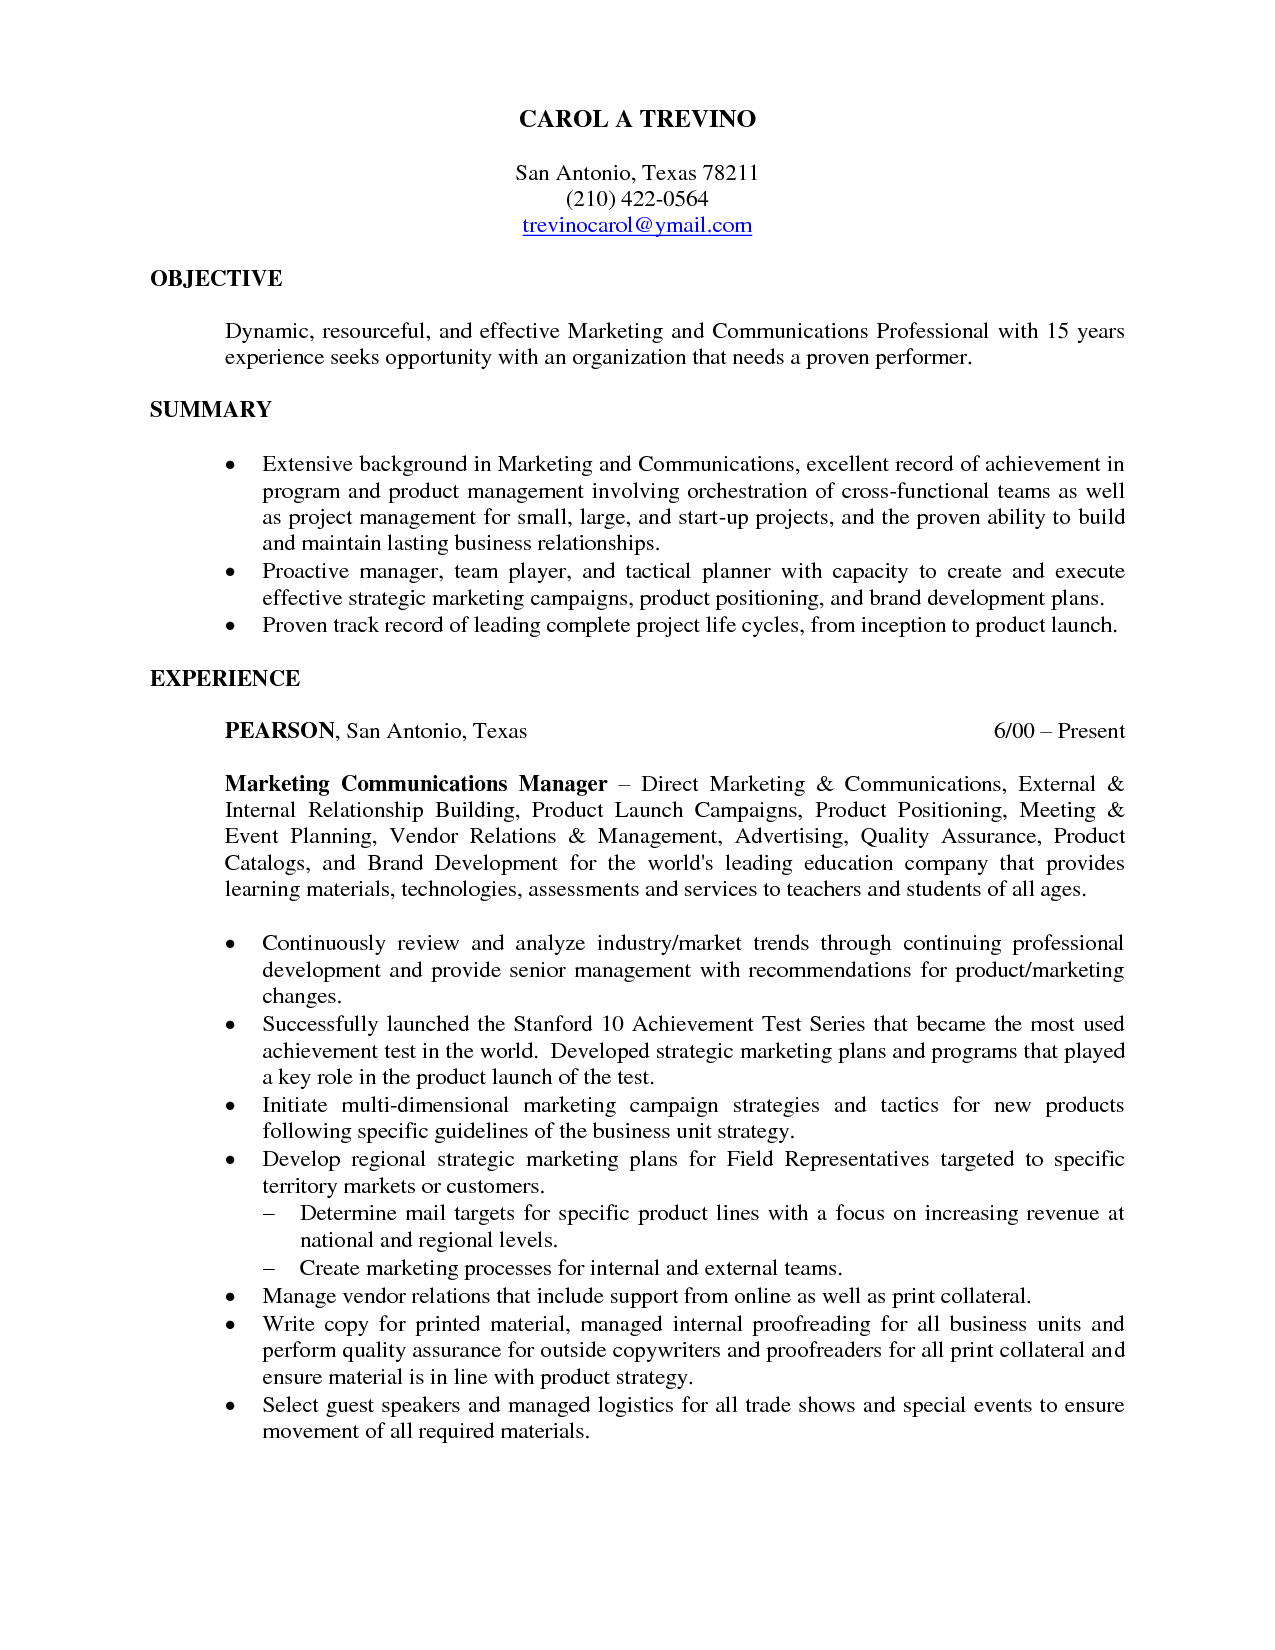 Excellent Objective Statement For Resume 15 Objective Resume Examples Samplebusinessresume